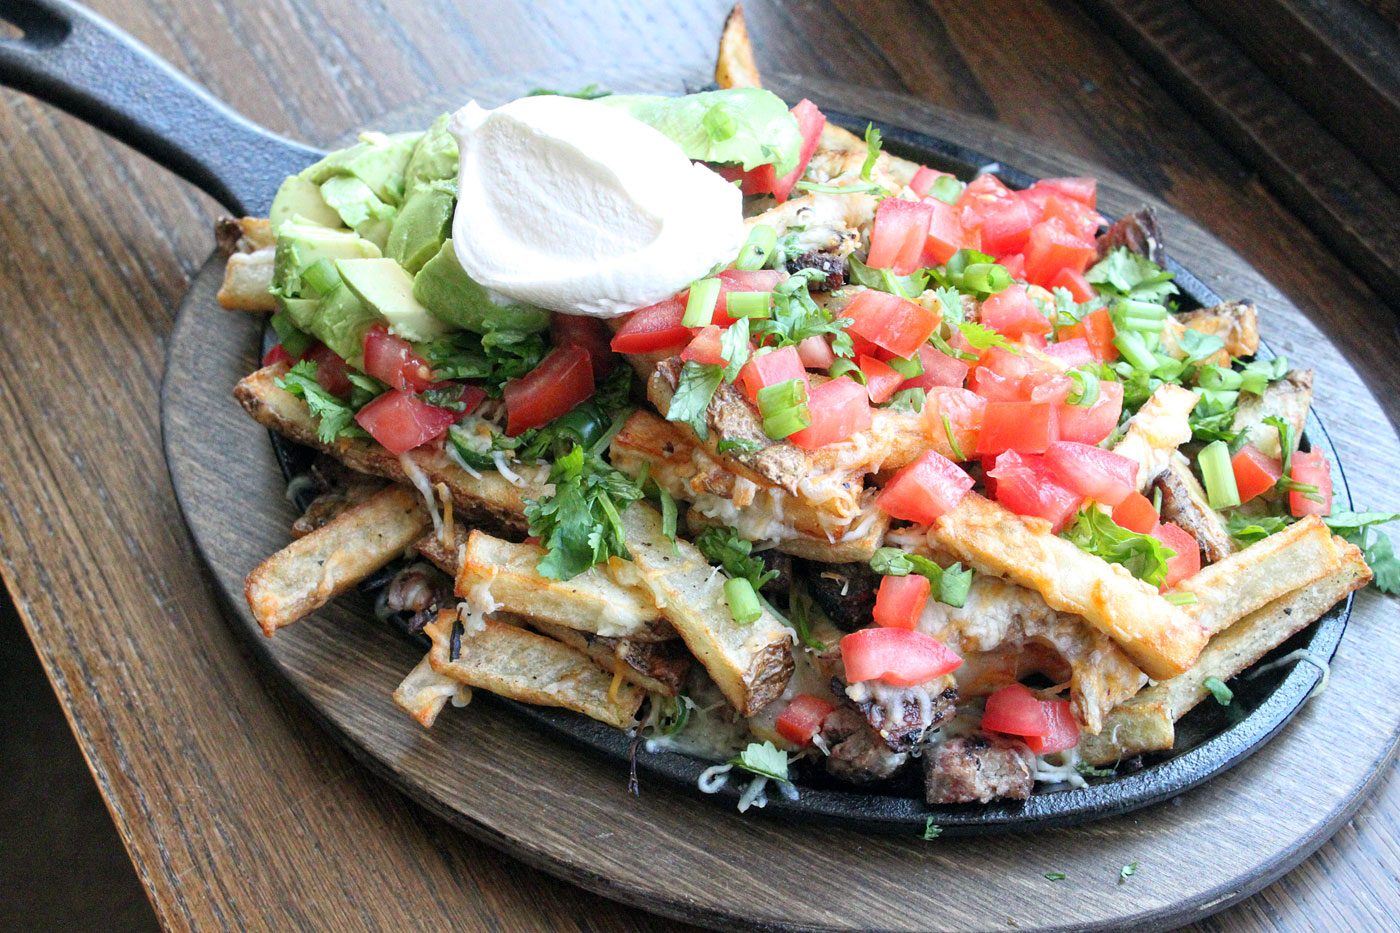 ... carne asada fries displaying 19 images for carne asada fries toolbar